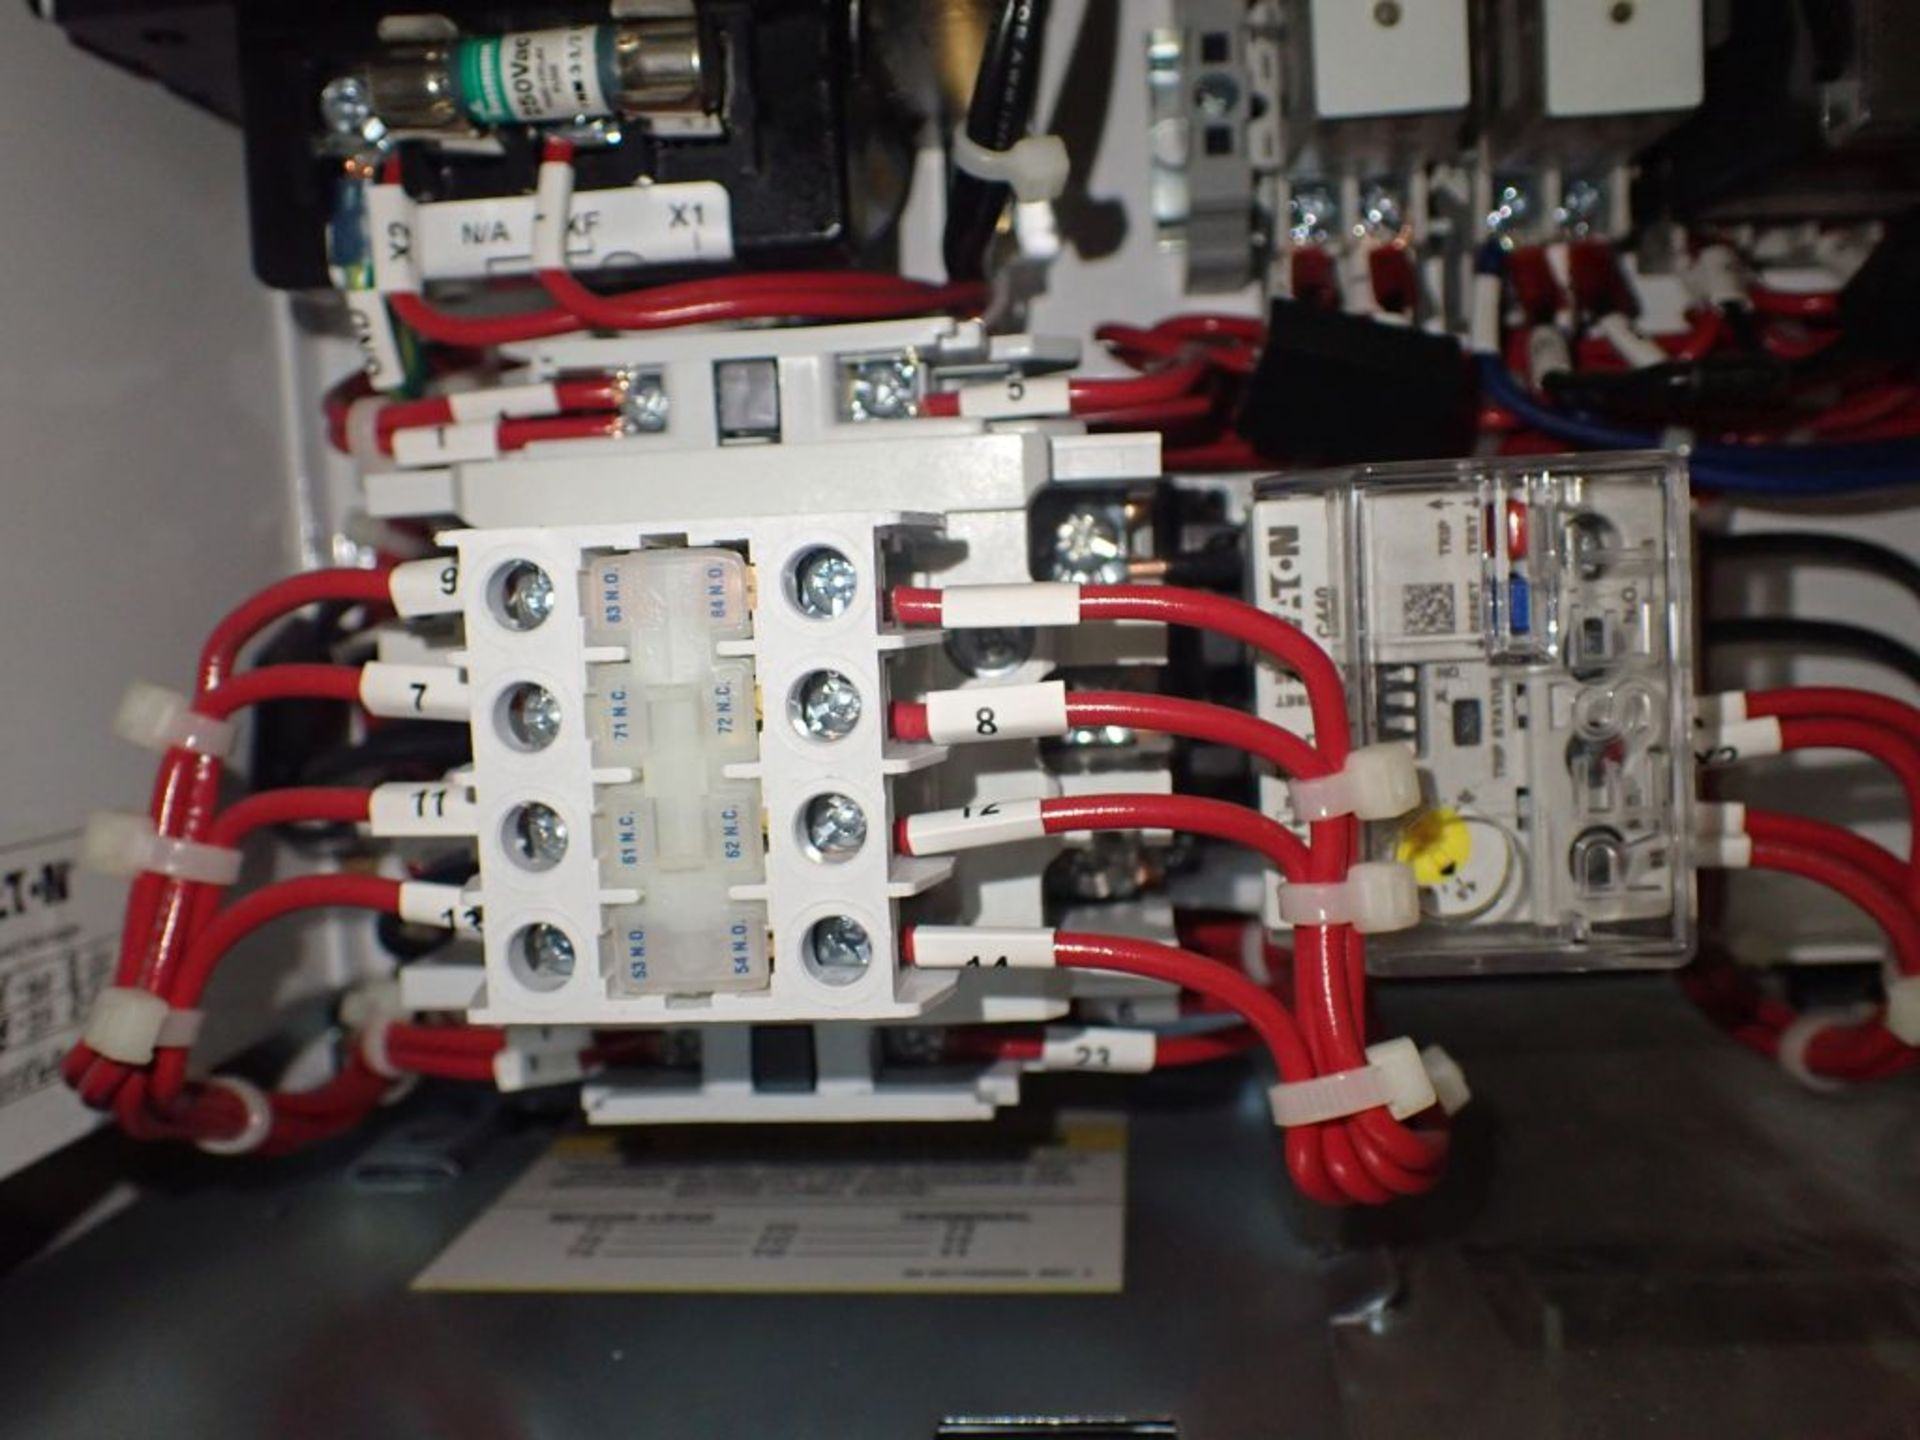 Eaton Freedom 2100 Series Motor Control Center | (2) F206-7A-10HP; (3) F206-15A-10HP; (1) FDRB-100A; - Image 68 of 87